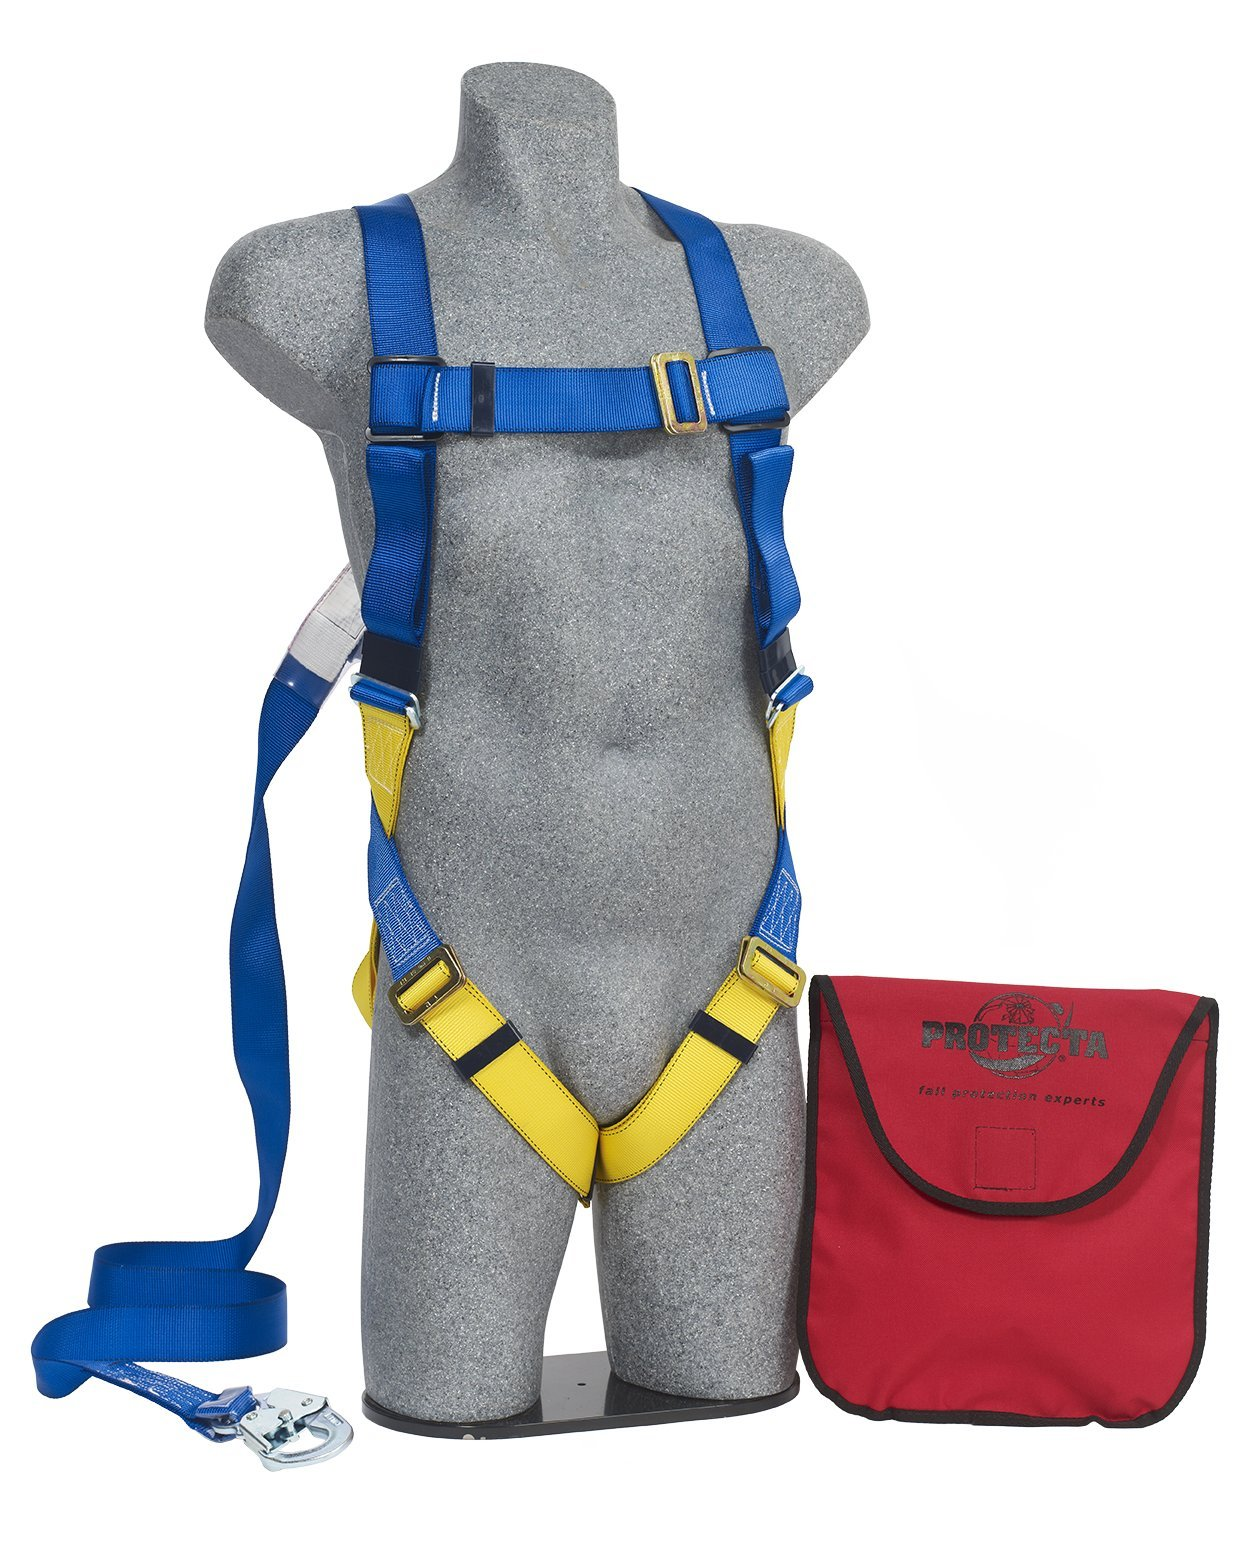 3M Protecta First AB17533 Kit, 5-Point Pass-Thru Leg Straps Harness, 6' Permanently Attached Lanyard W/Snap Hook, Carrying Bag, Univ, Blue/Yellow